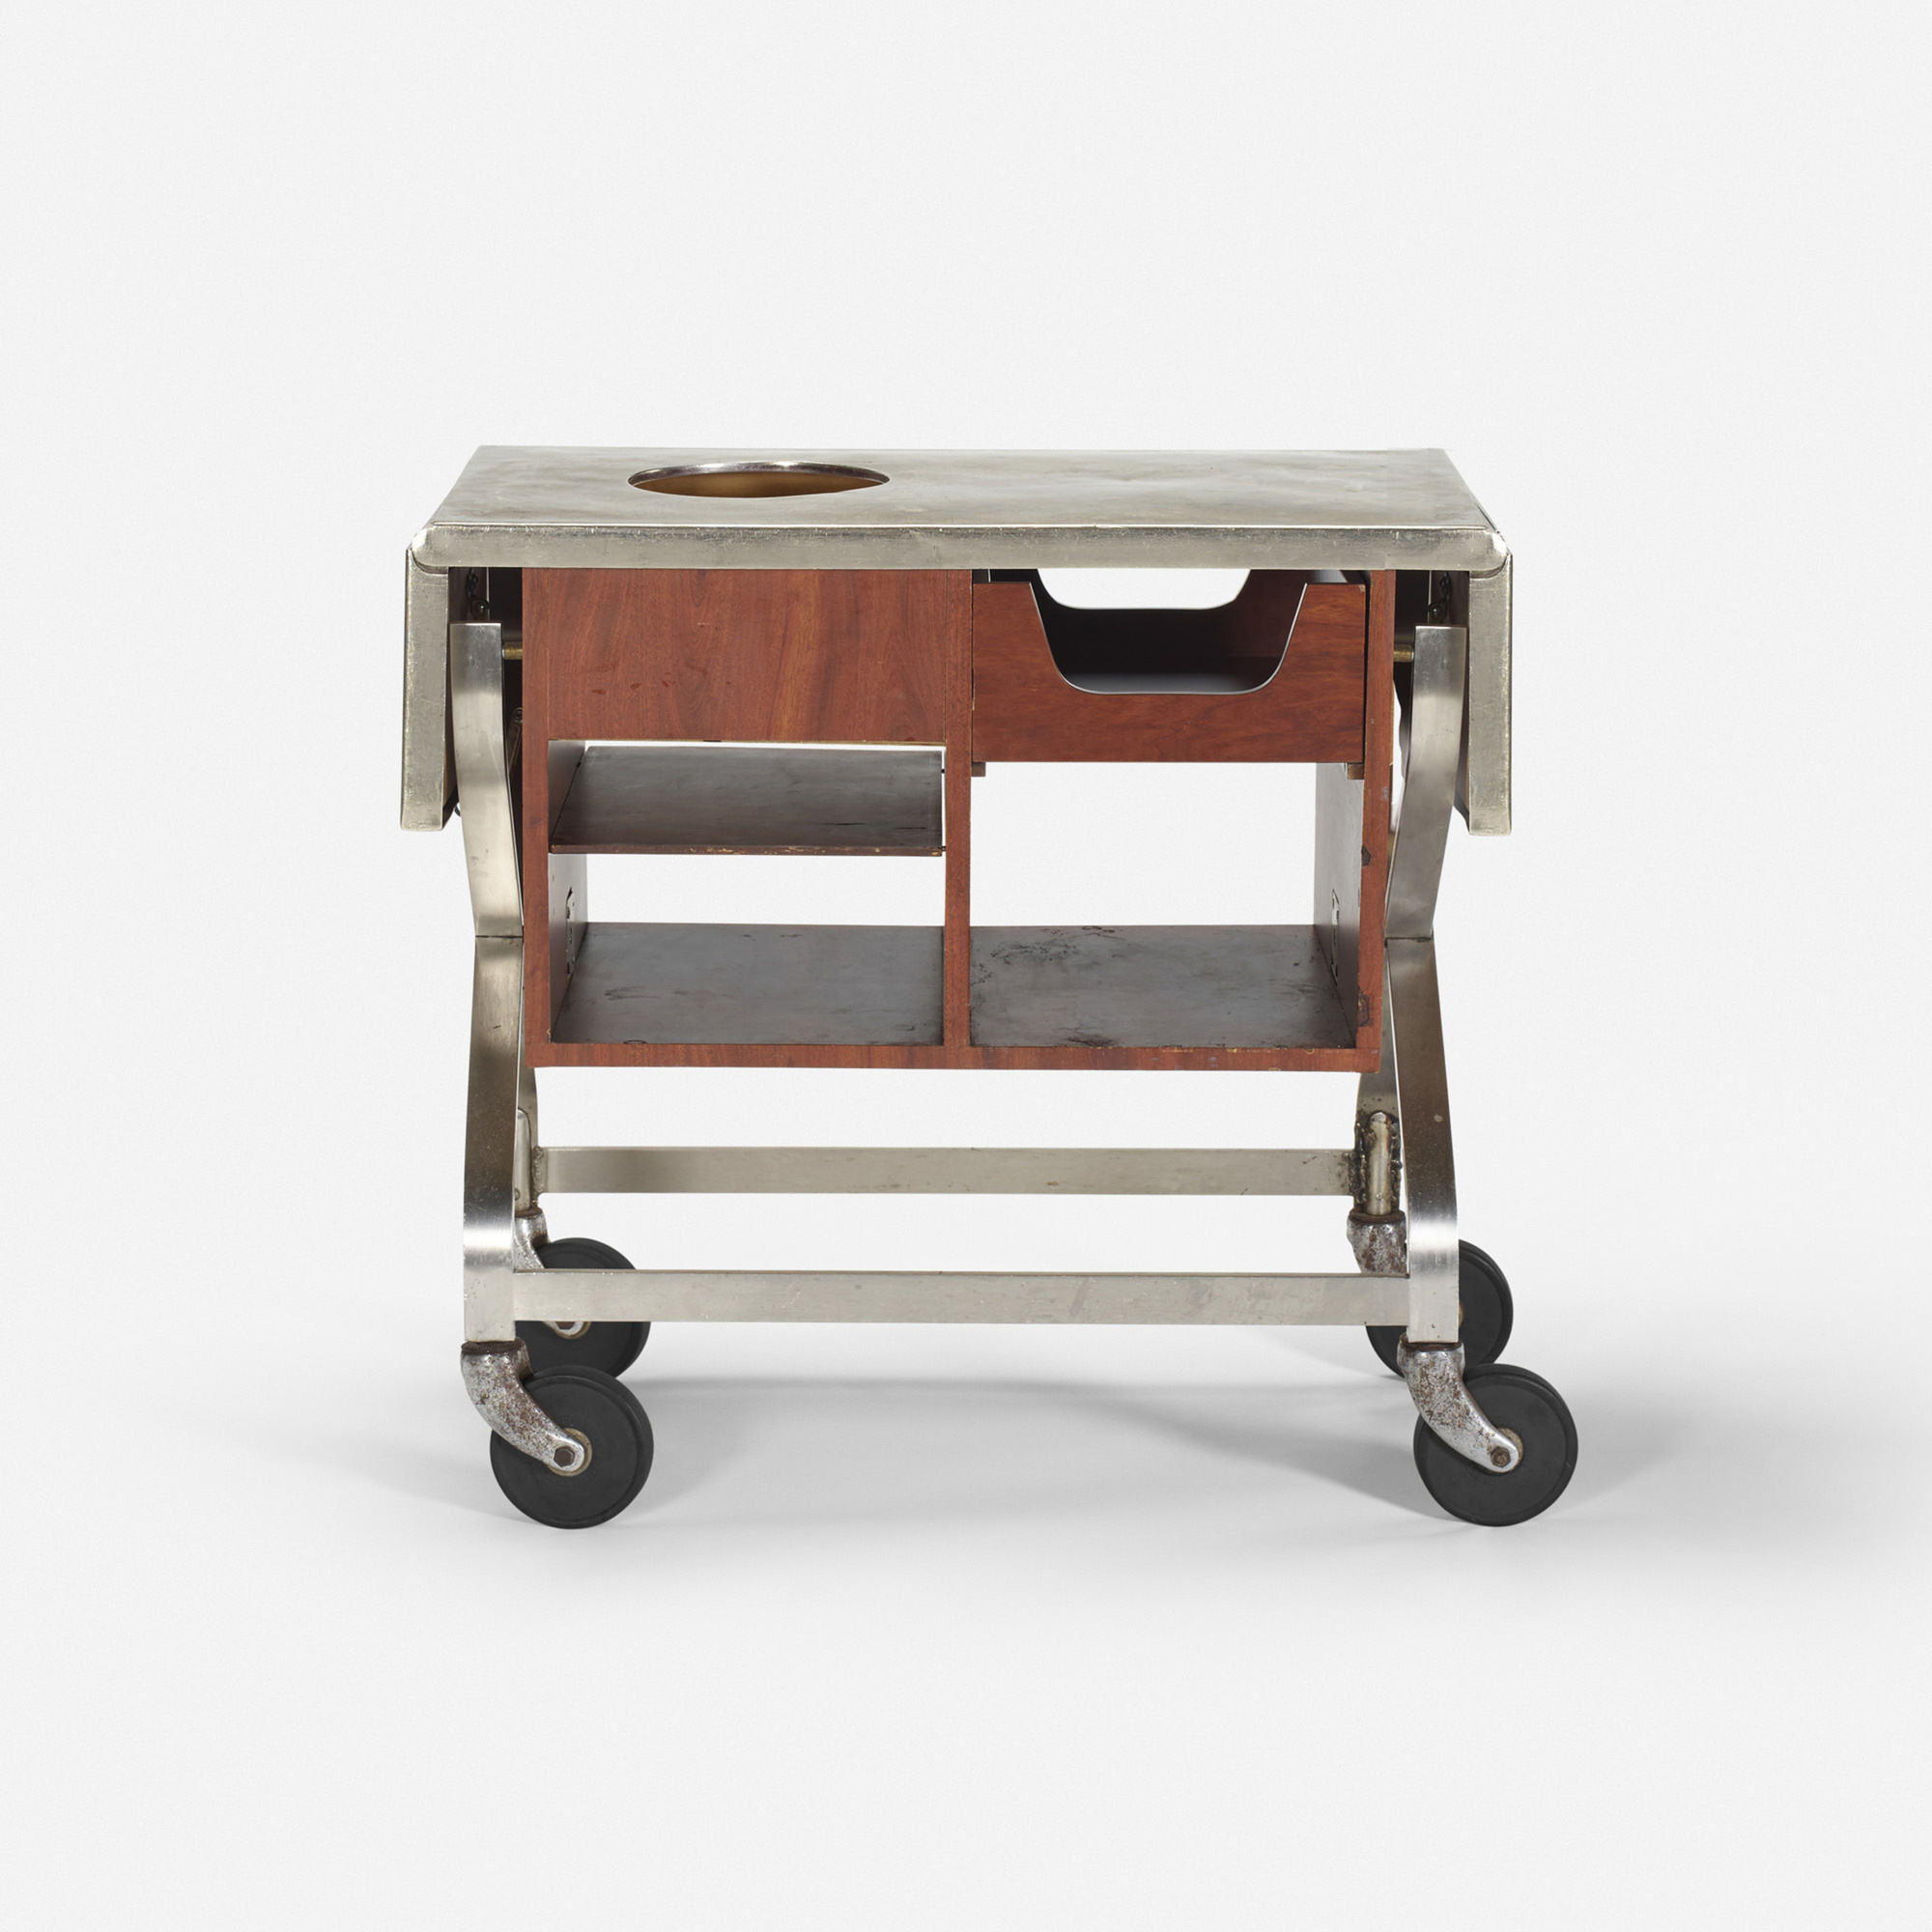 731: Garth and Ada Louise Huxtable / Serving cart from The Four Seasons (1 of 1)